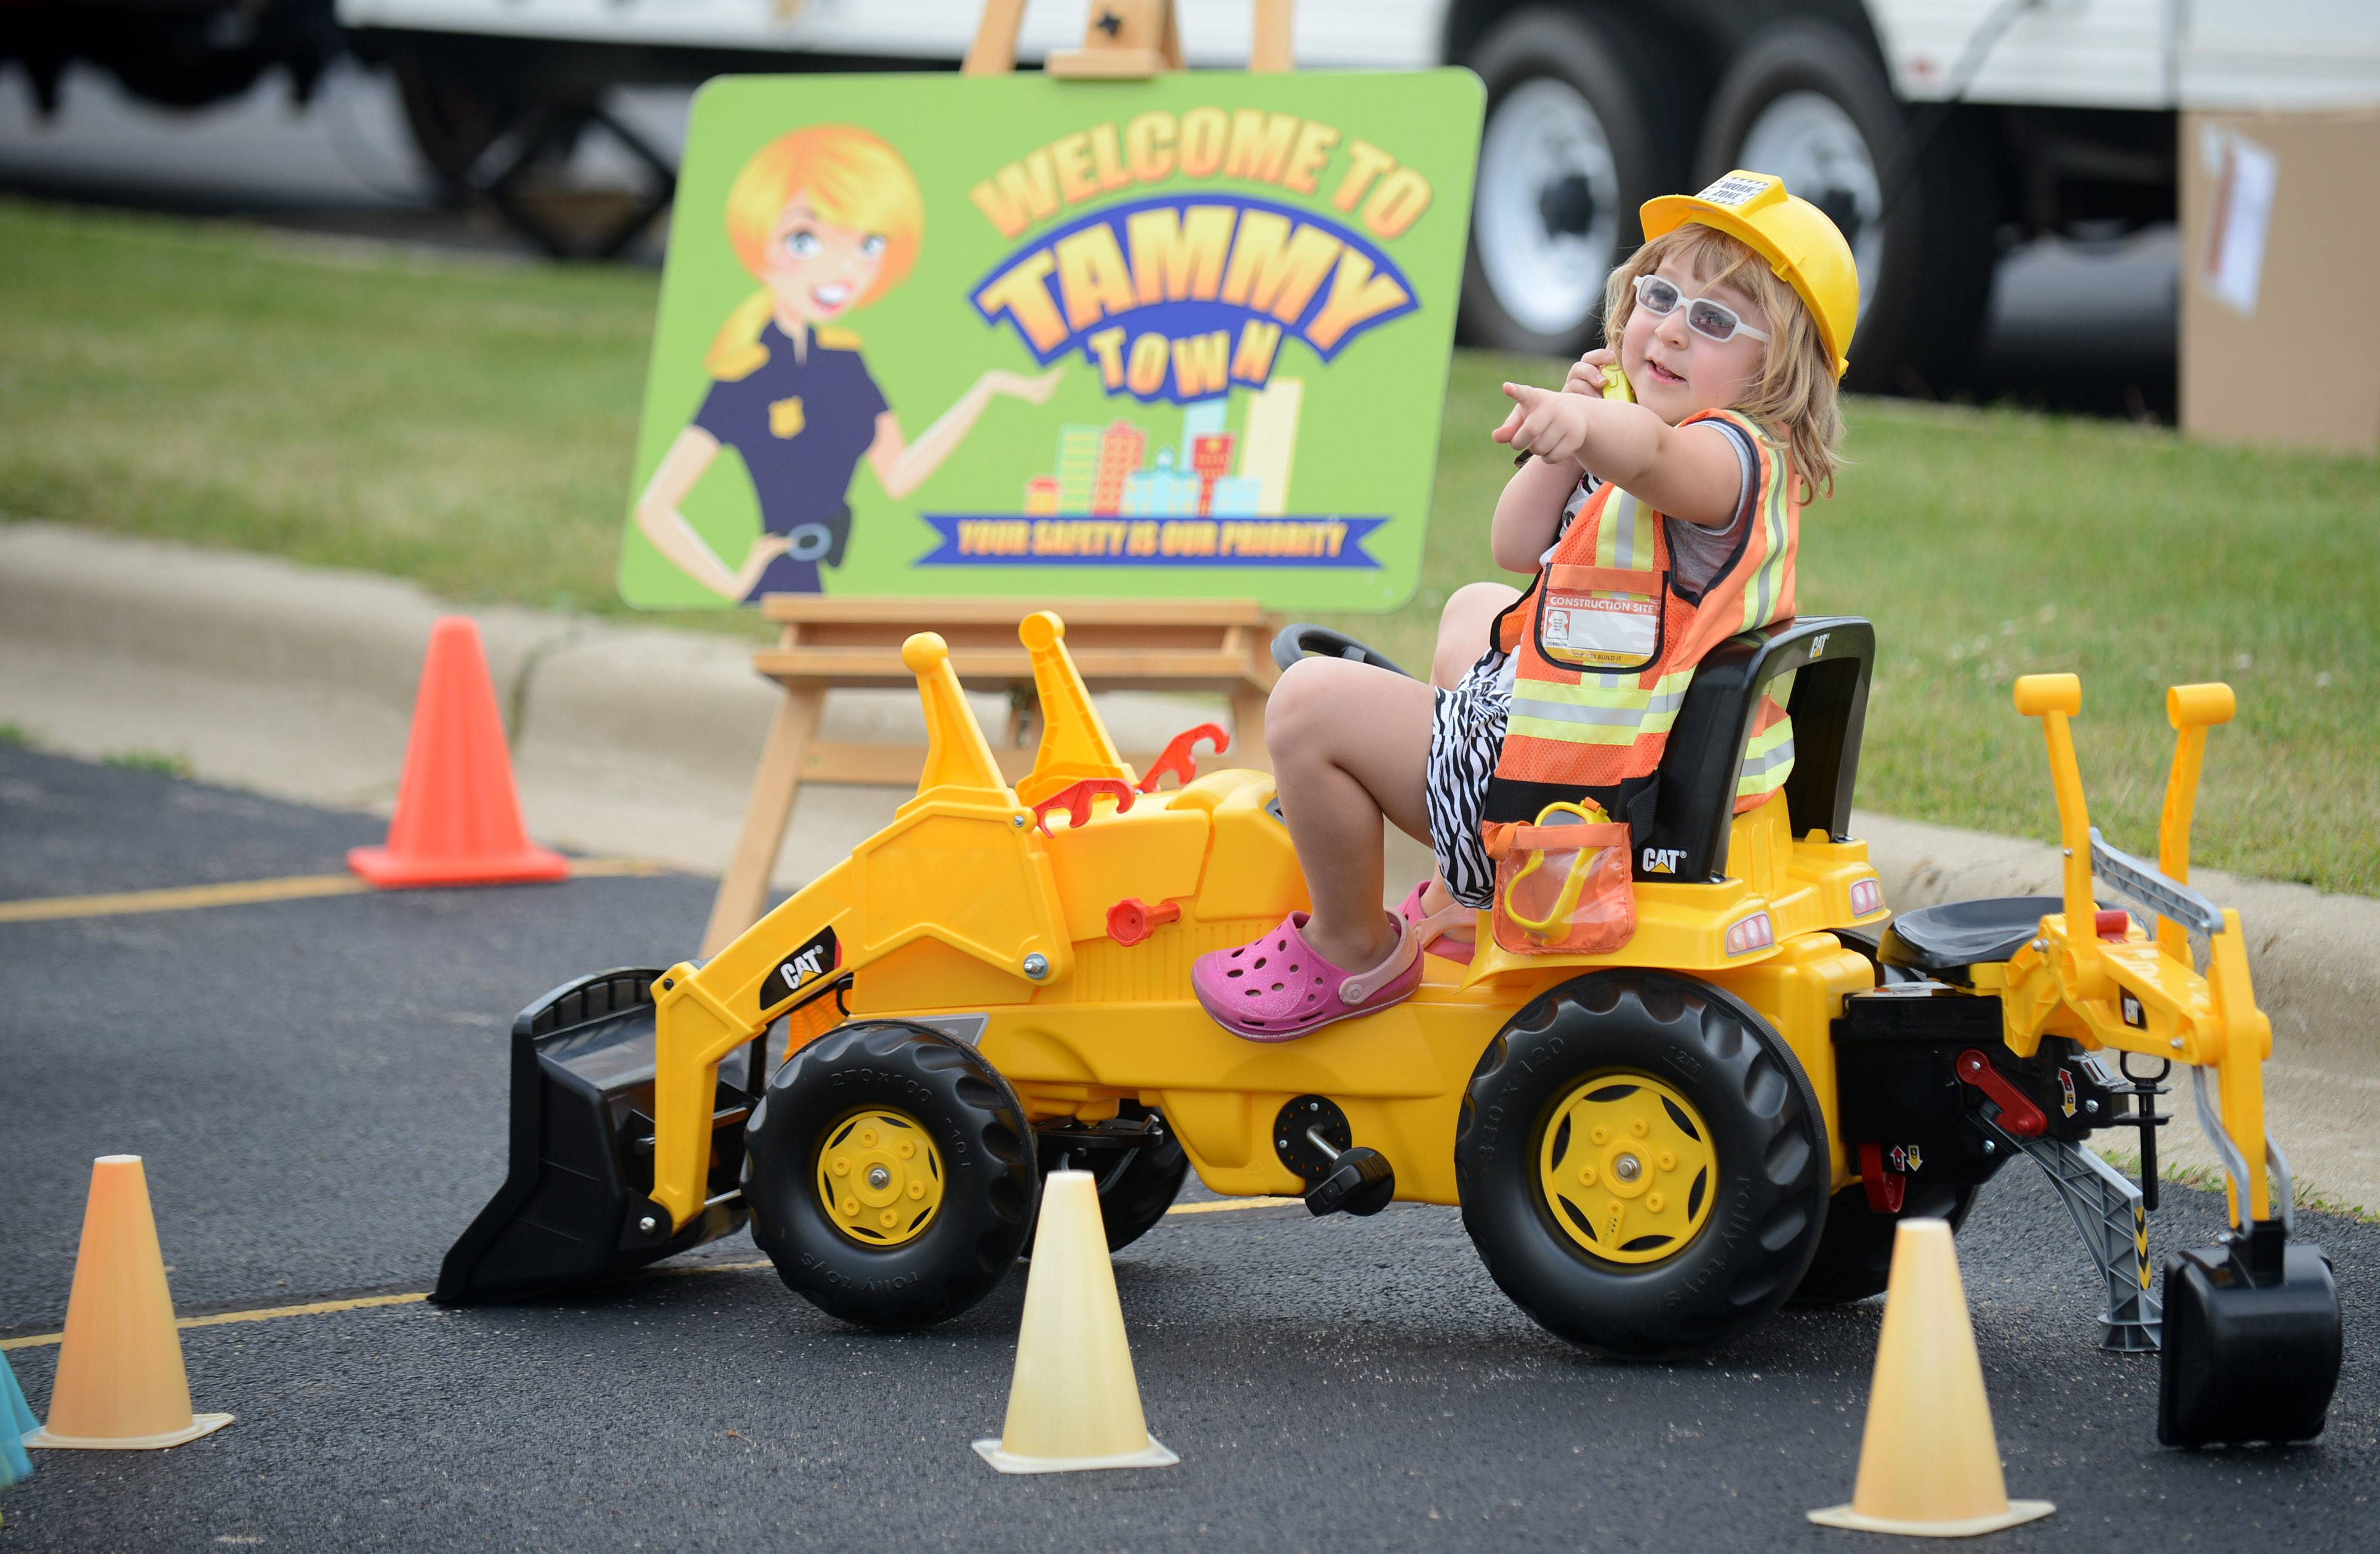 Sydney Sawyer, 4, of South Elgin calls in a 911 call to the police while acting the part of a construction worker in the Tammy Town interactive game for kids at South Elgin's National Night Out event .The program is Bartlett police Officer Tammy Schulz's creation.